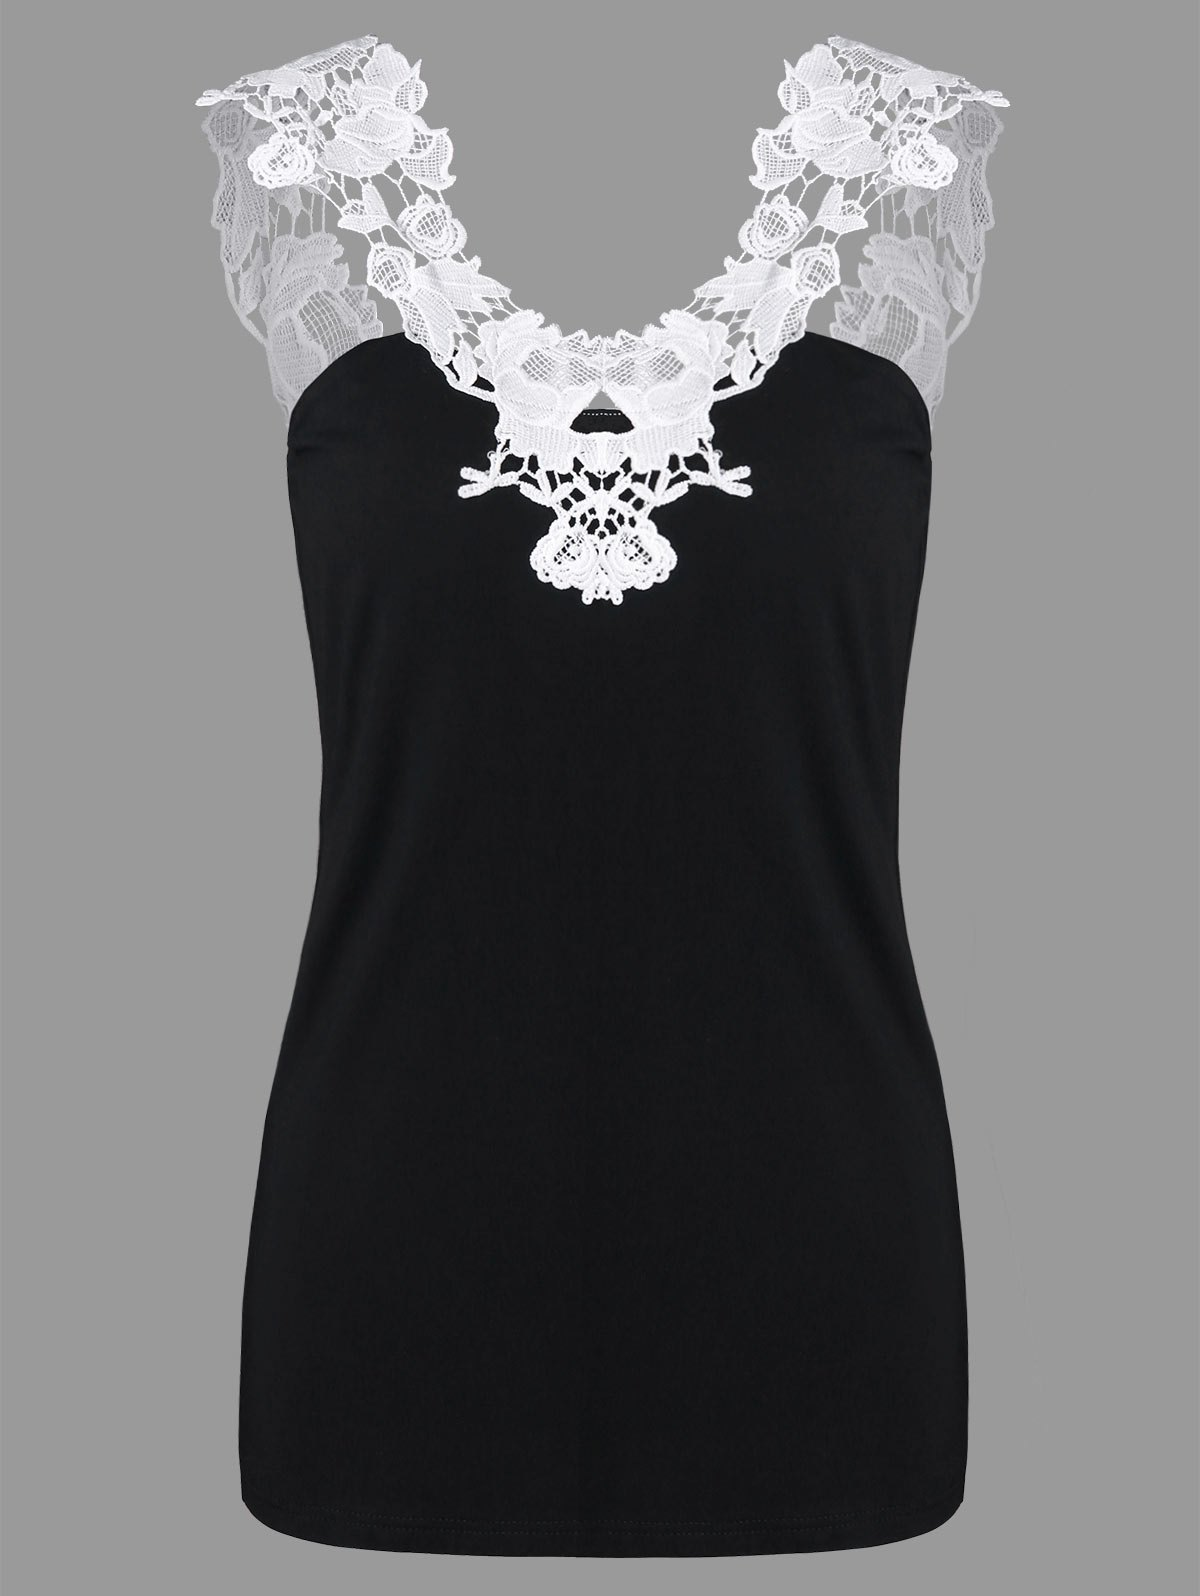 Fashion Lace Applique Cut Out Tank Top